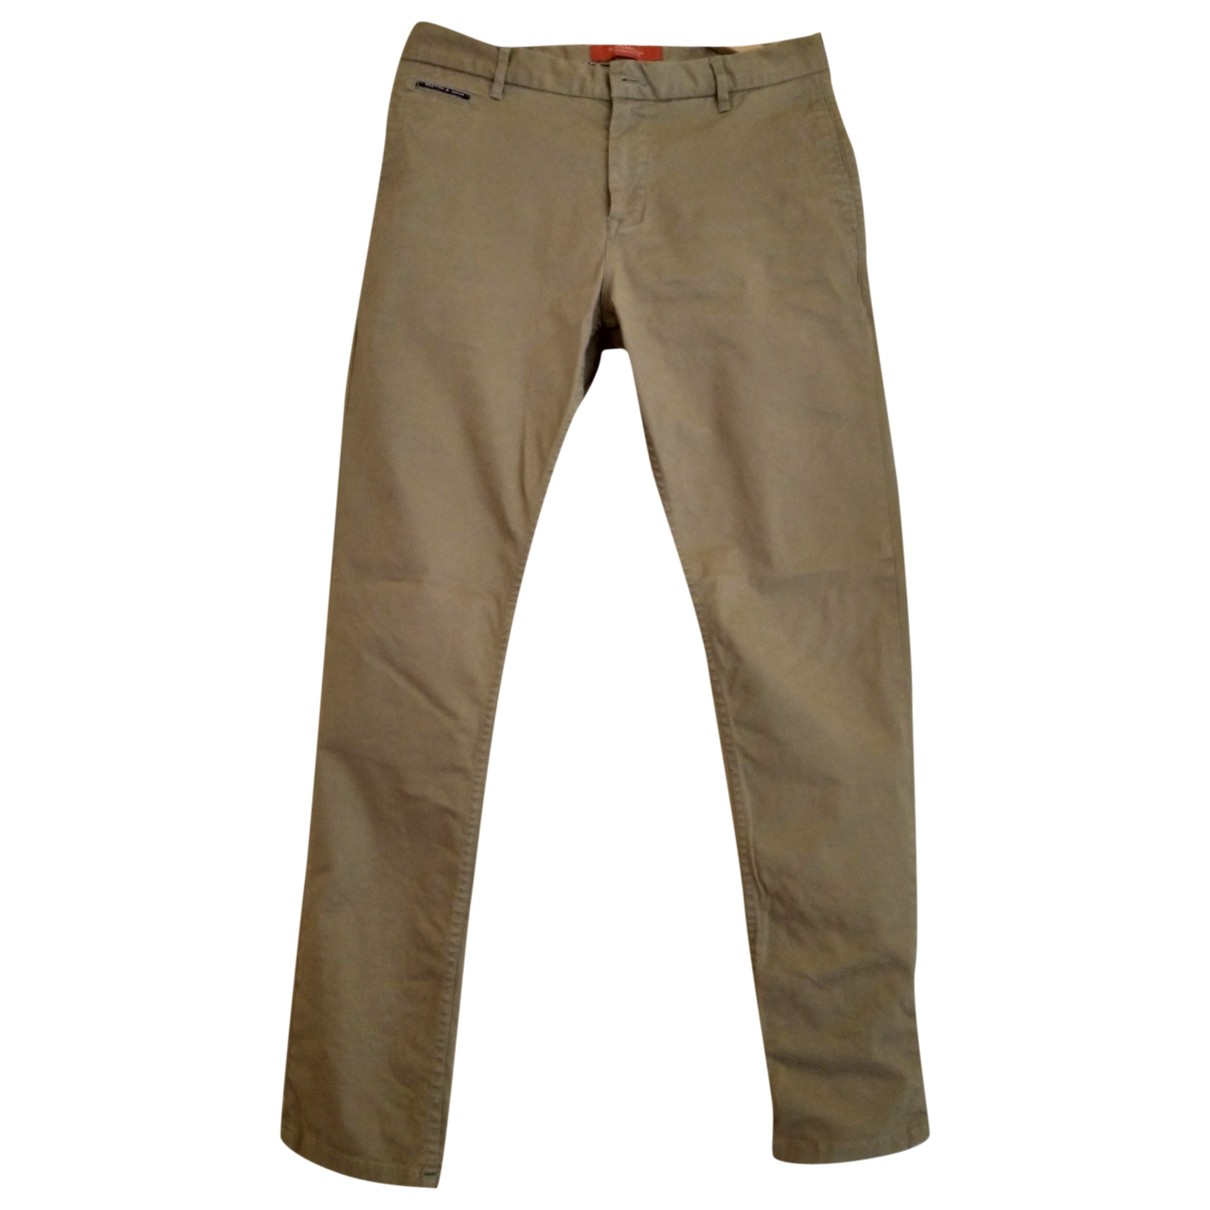 Scotch & Soda \N Beige Cotton Trousers for Men M International